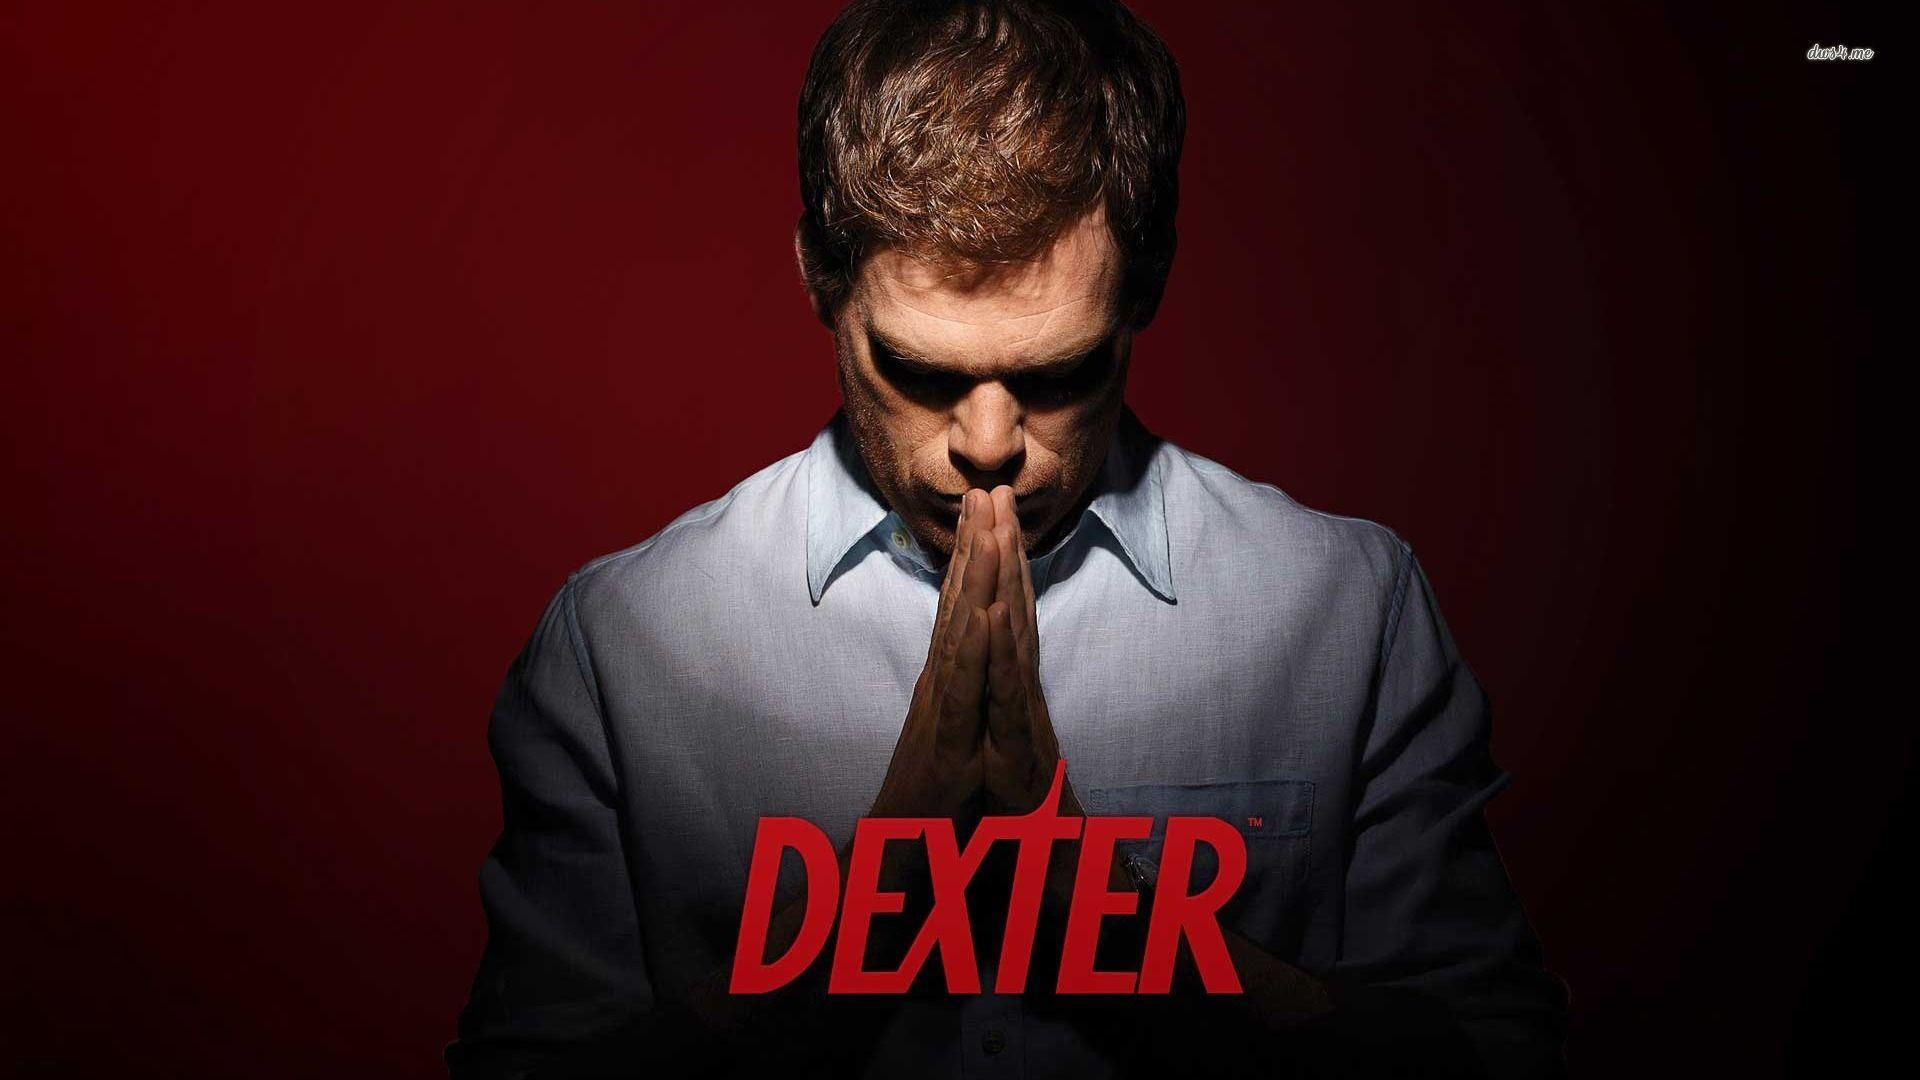 Image For > Dexter Wallpapers 1920x1080